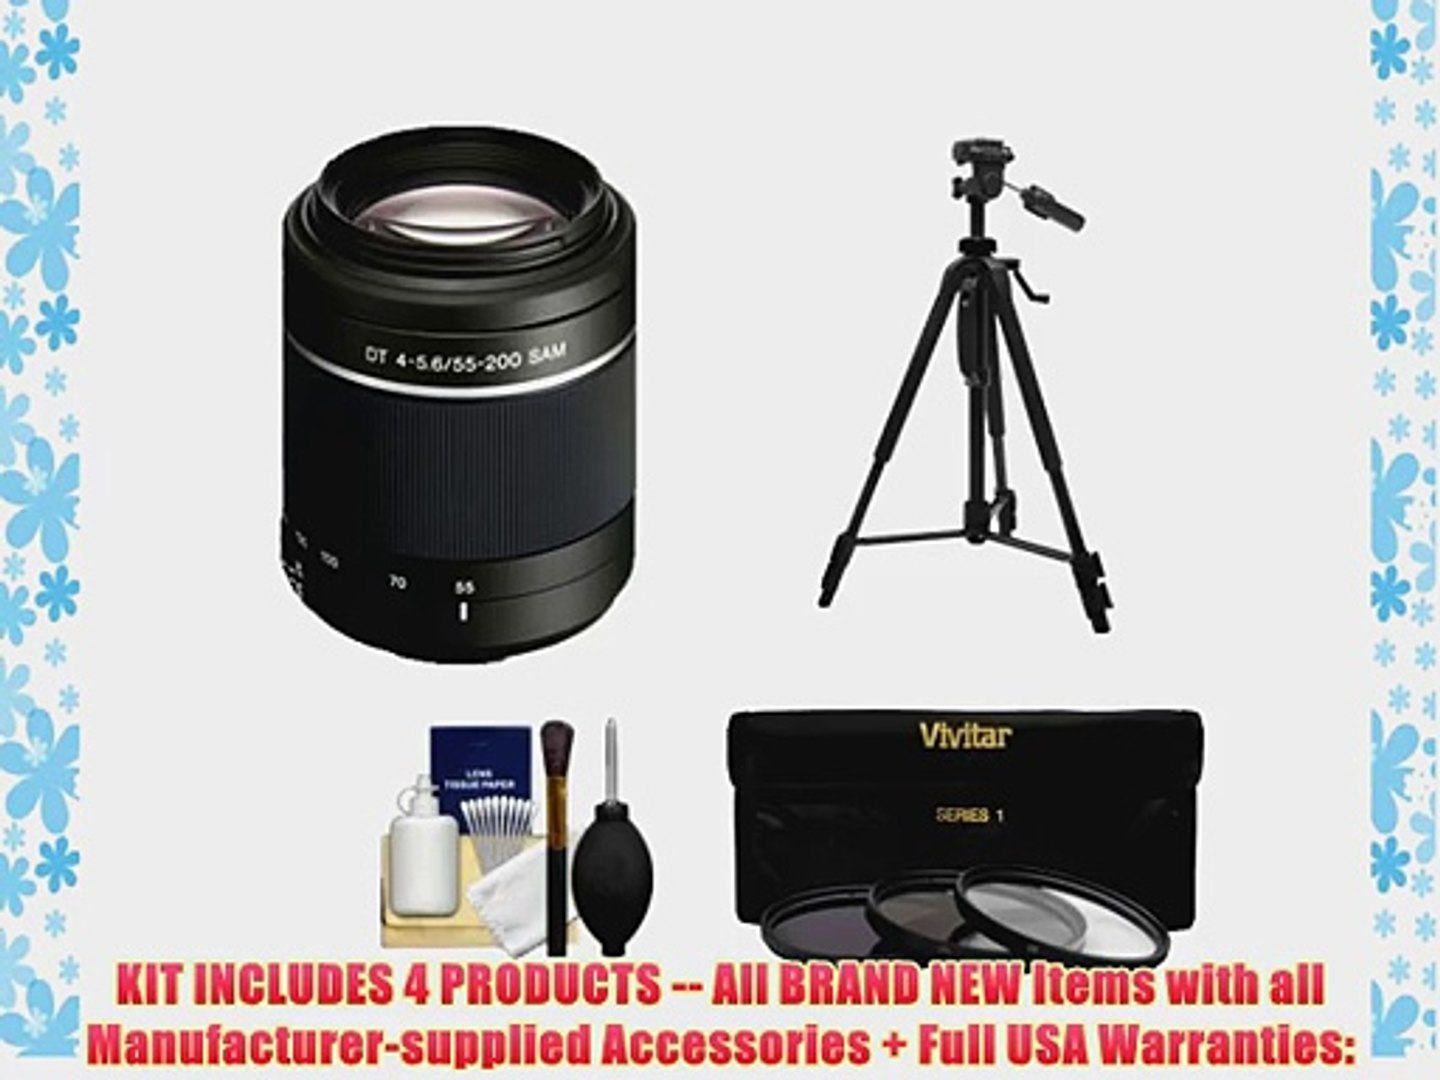 DavisMAX 55mm UV Filter for Sony Alpha SLT-A57 with Sony 35mm f//1.8 DT Prime Lens Fibercloth Filter Bundle